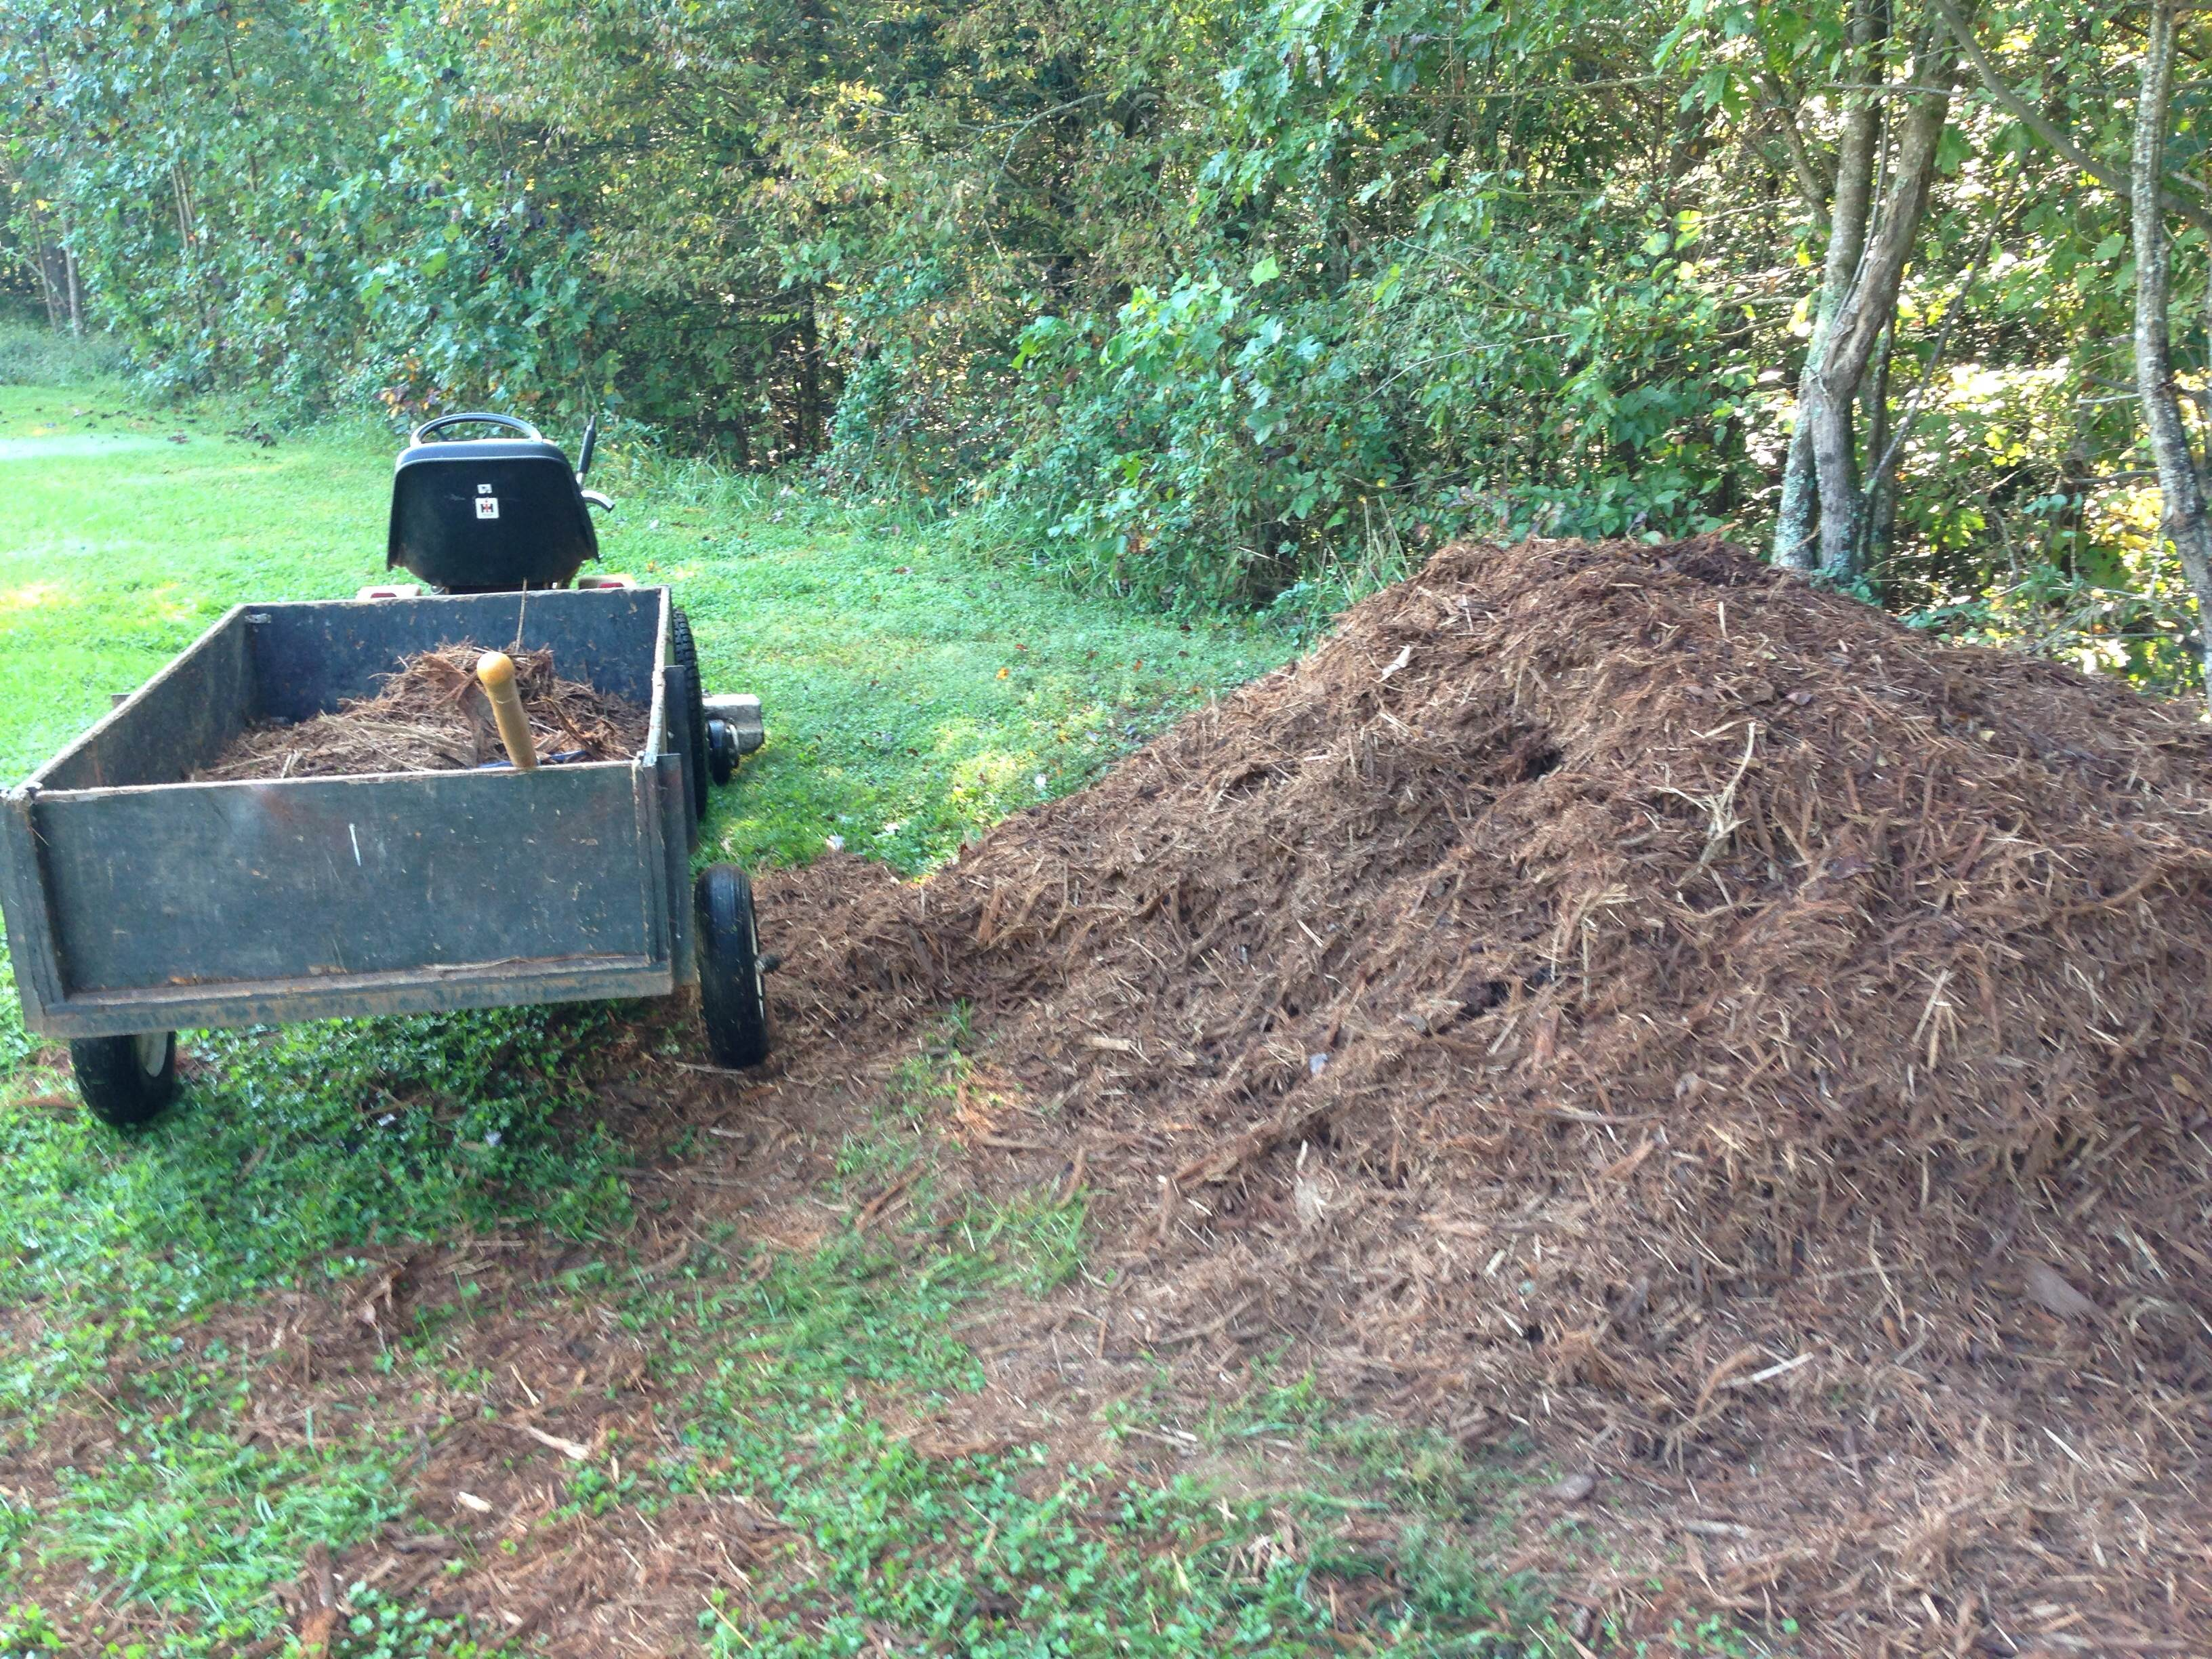 Backyard Mulch Pile : see that pile of mulch like a pile of faith that load of mulch